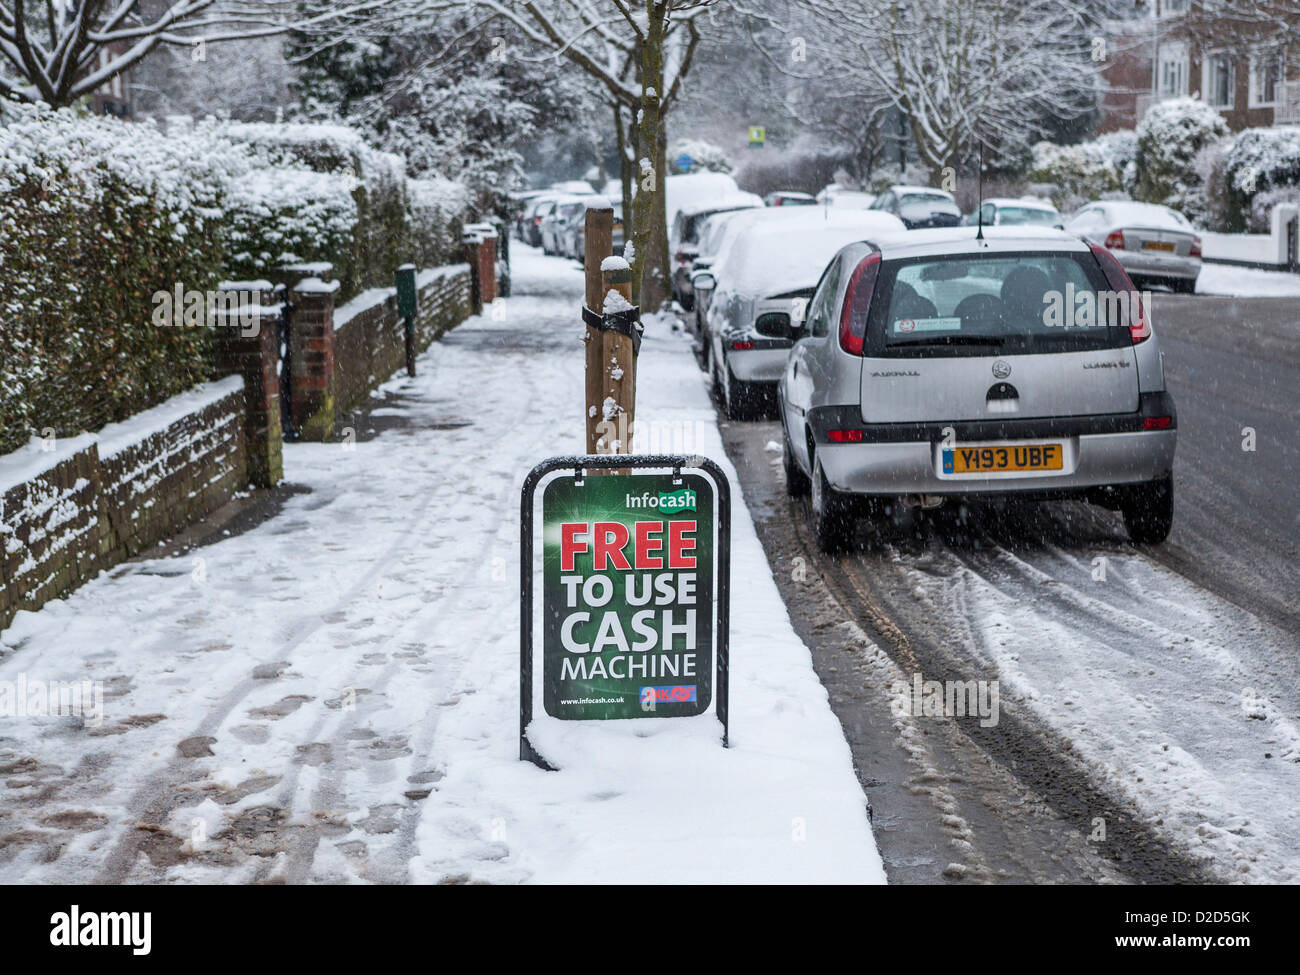 An advertisemnet for a 'free to use' cash machine in a snow covered suburban road - Strawberry Hill, Twickenham, - Stock Image